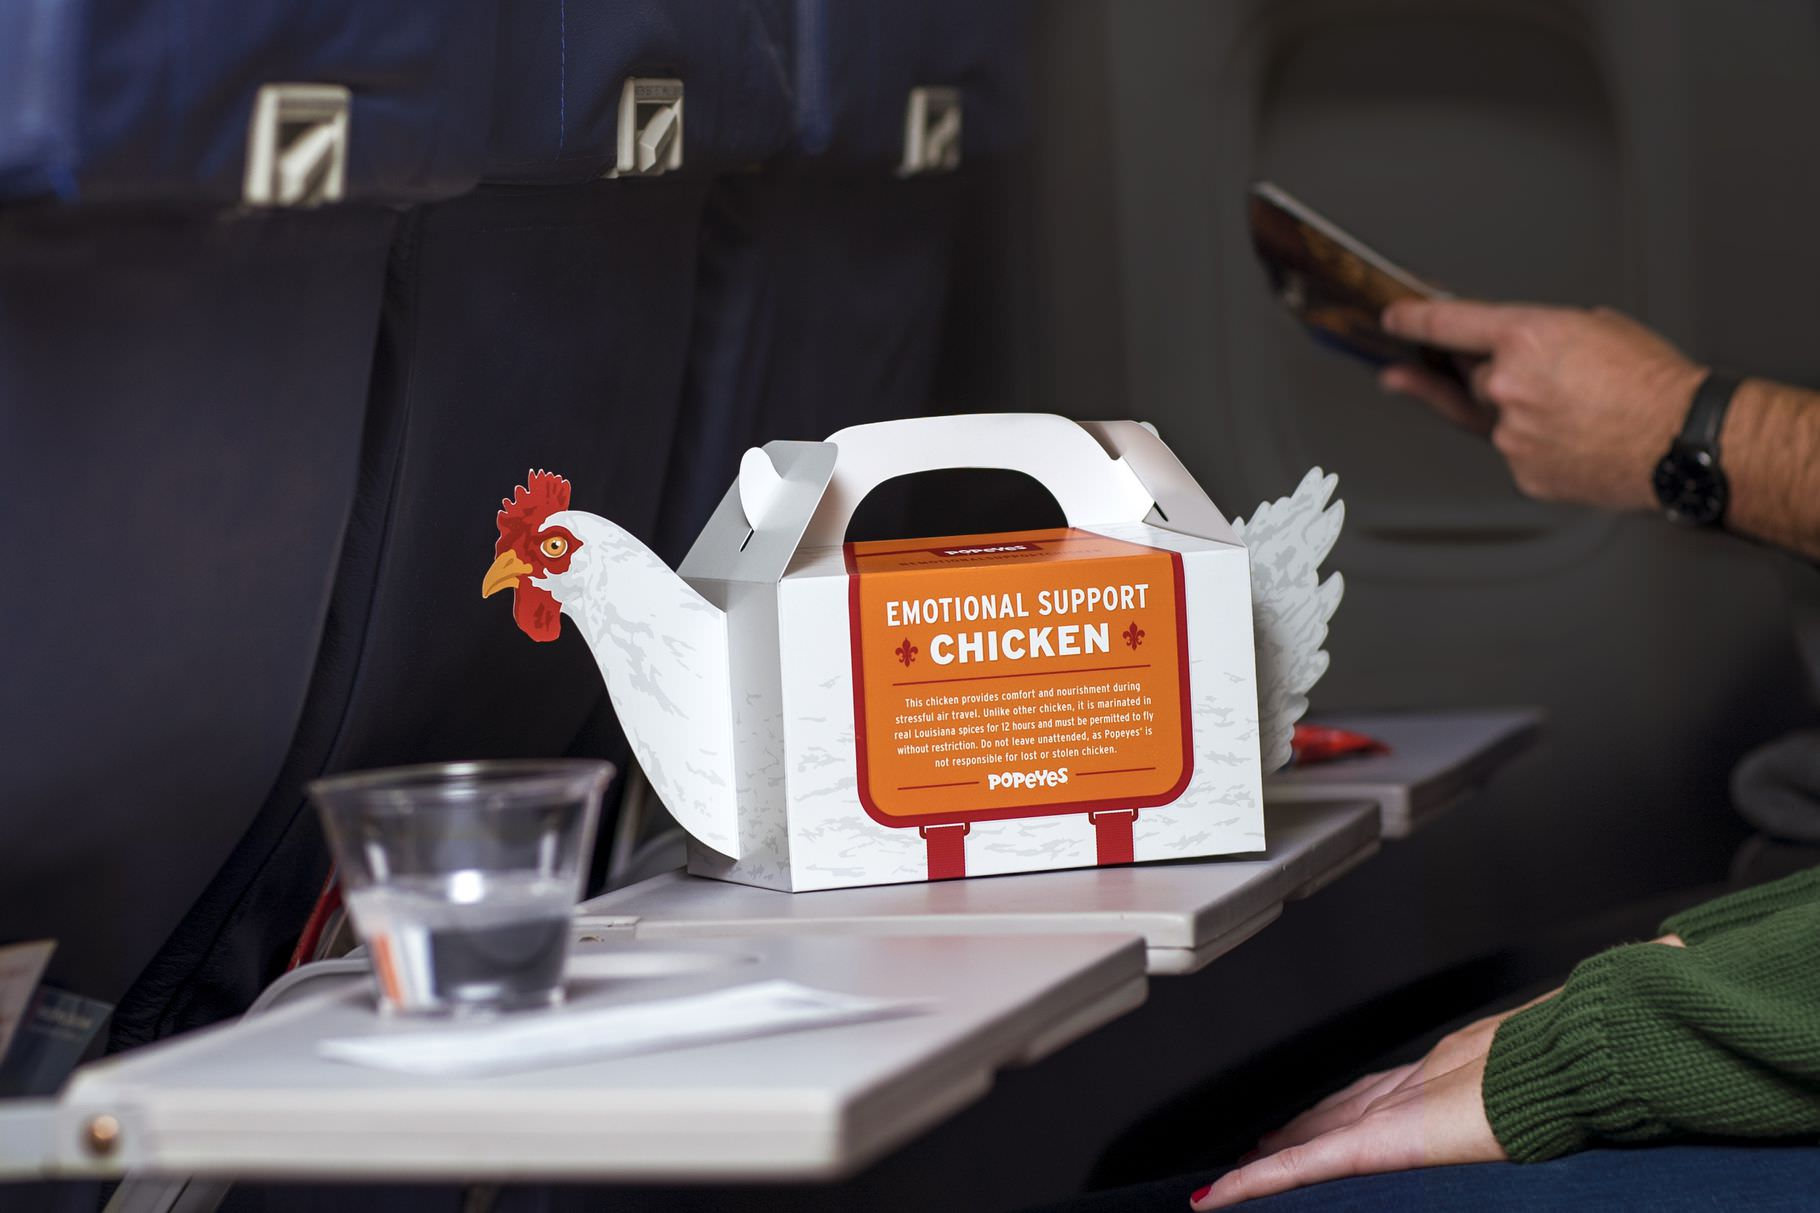 Popeyes' emotional support chicken.